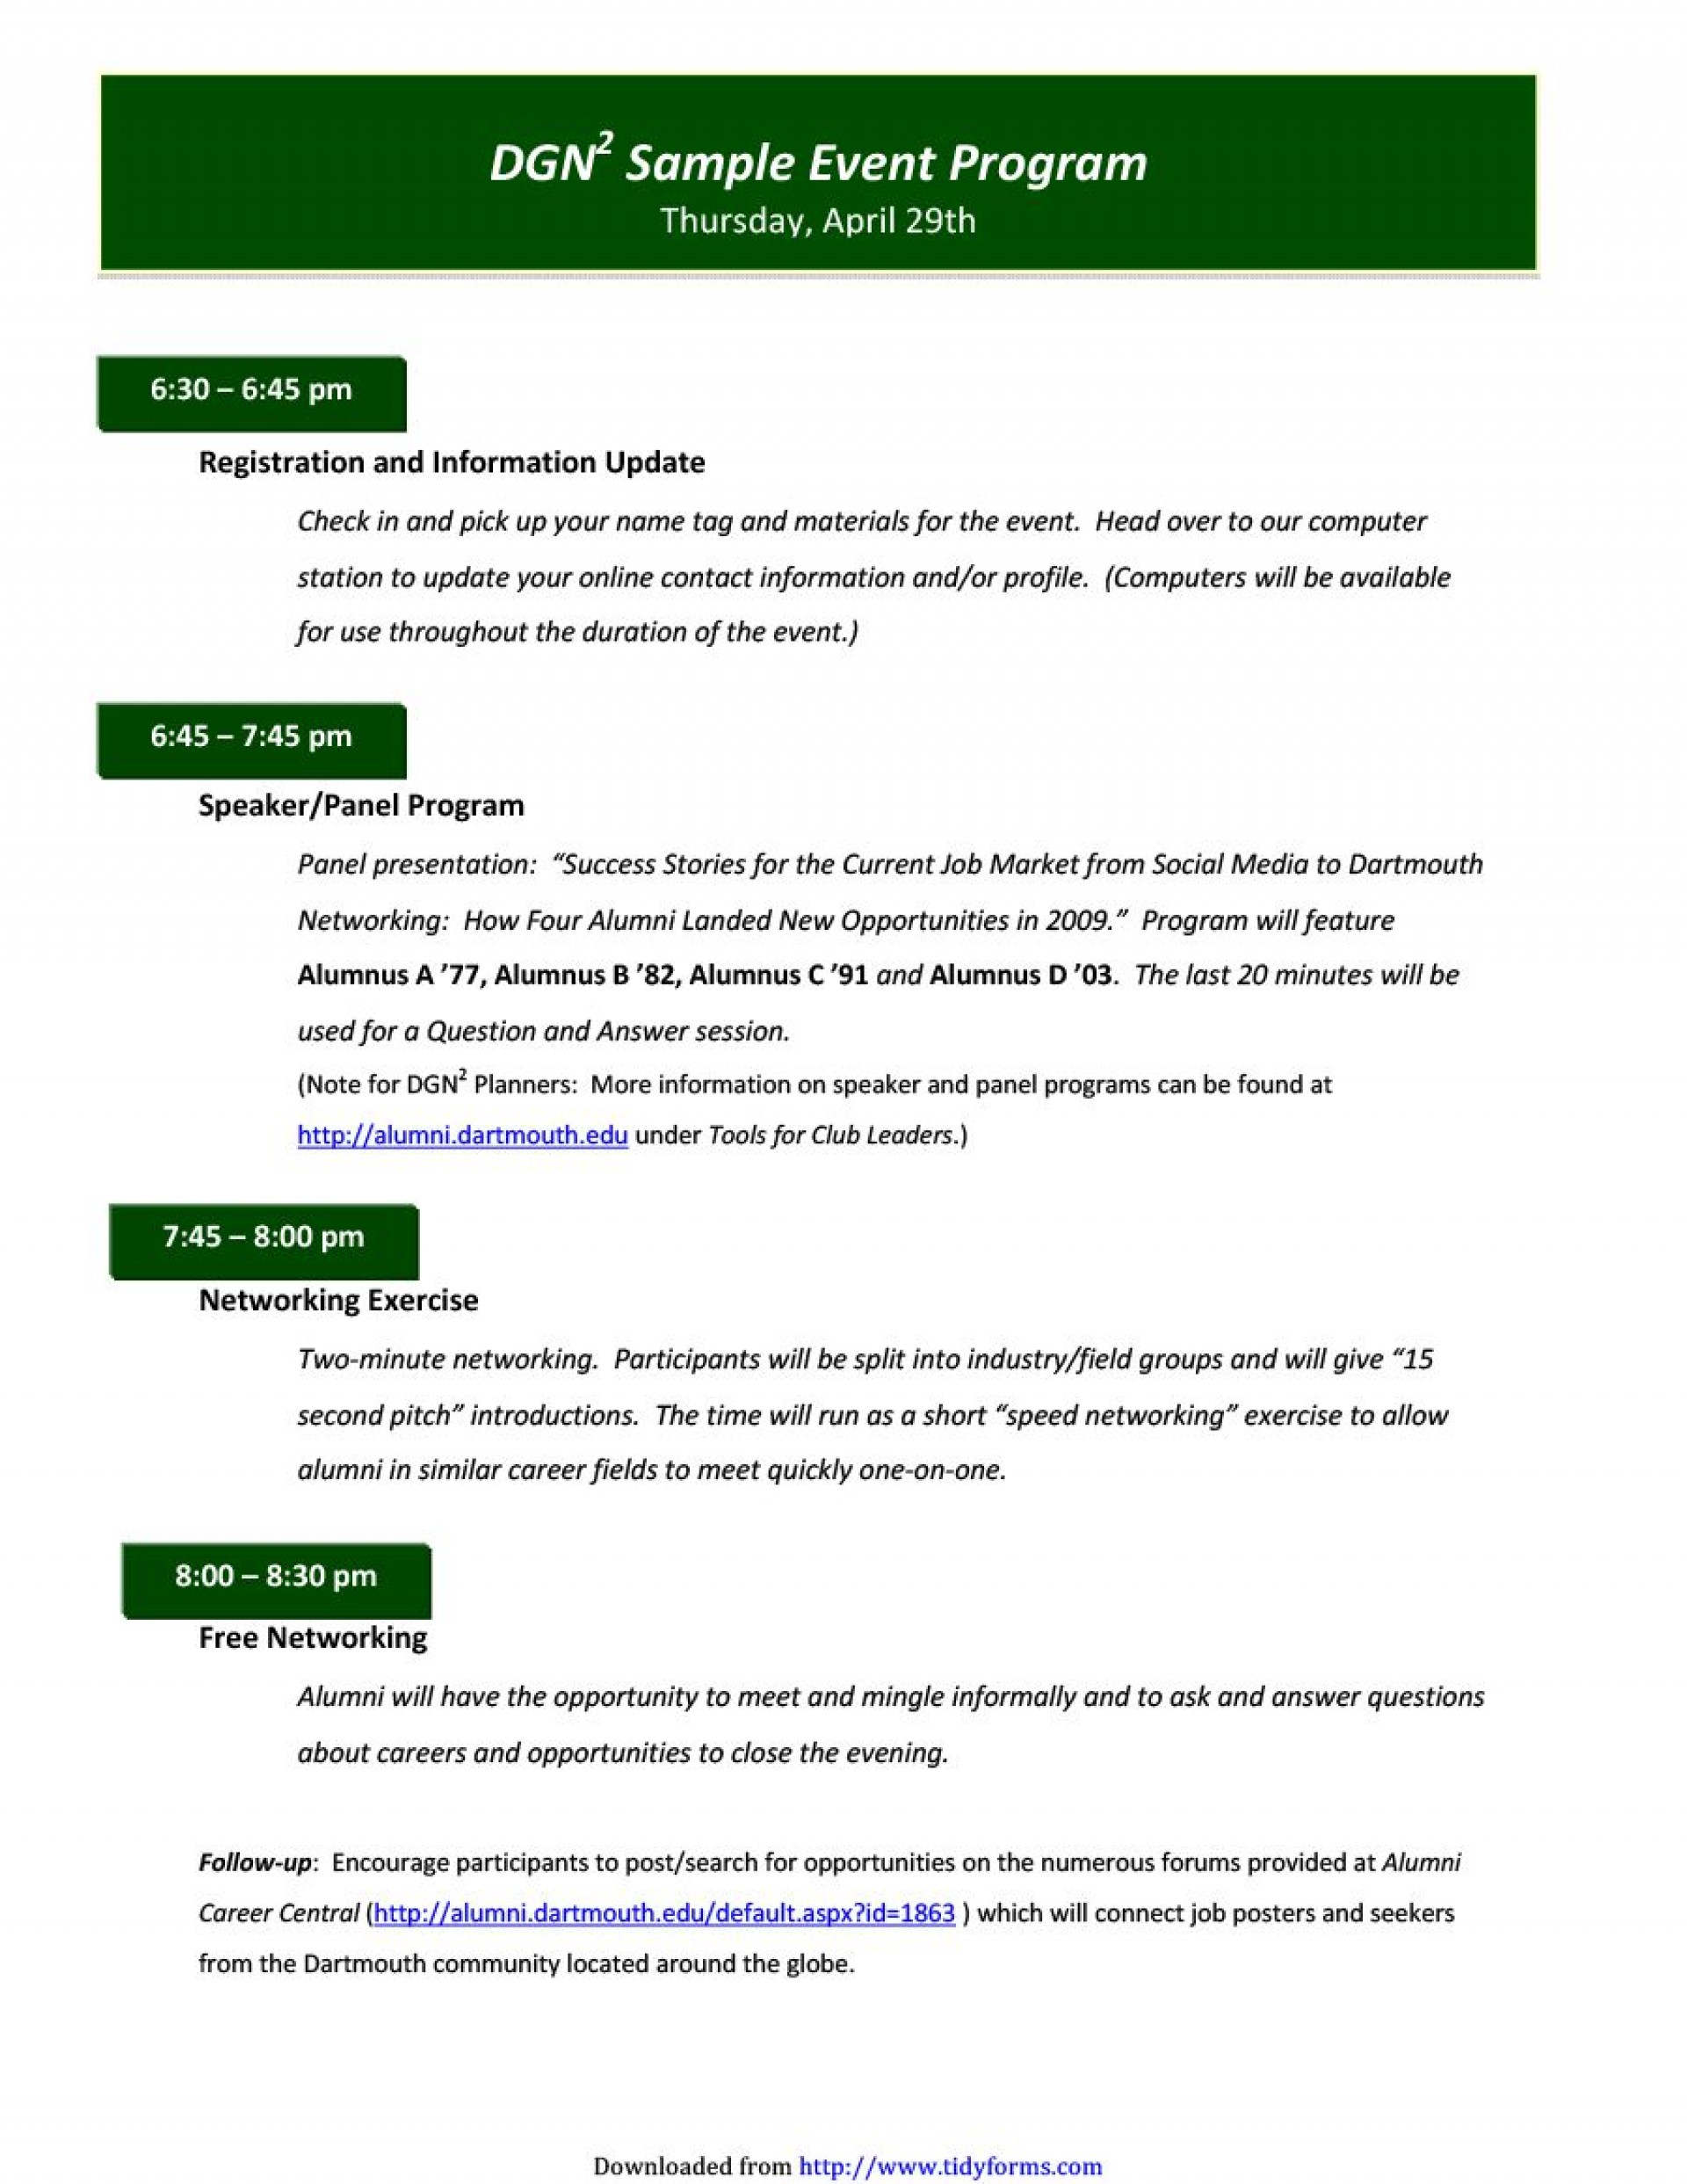 009 Archaicawful Free Event Program Template Example  Schedule Psd Word1920